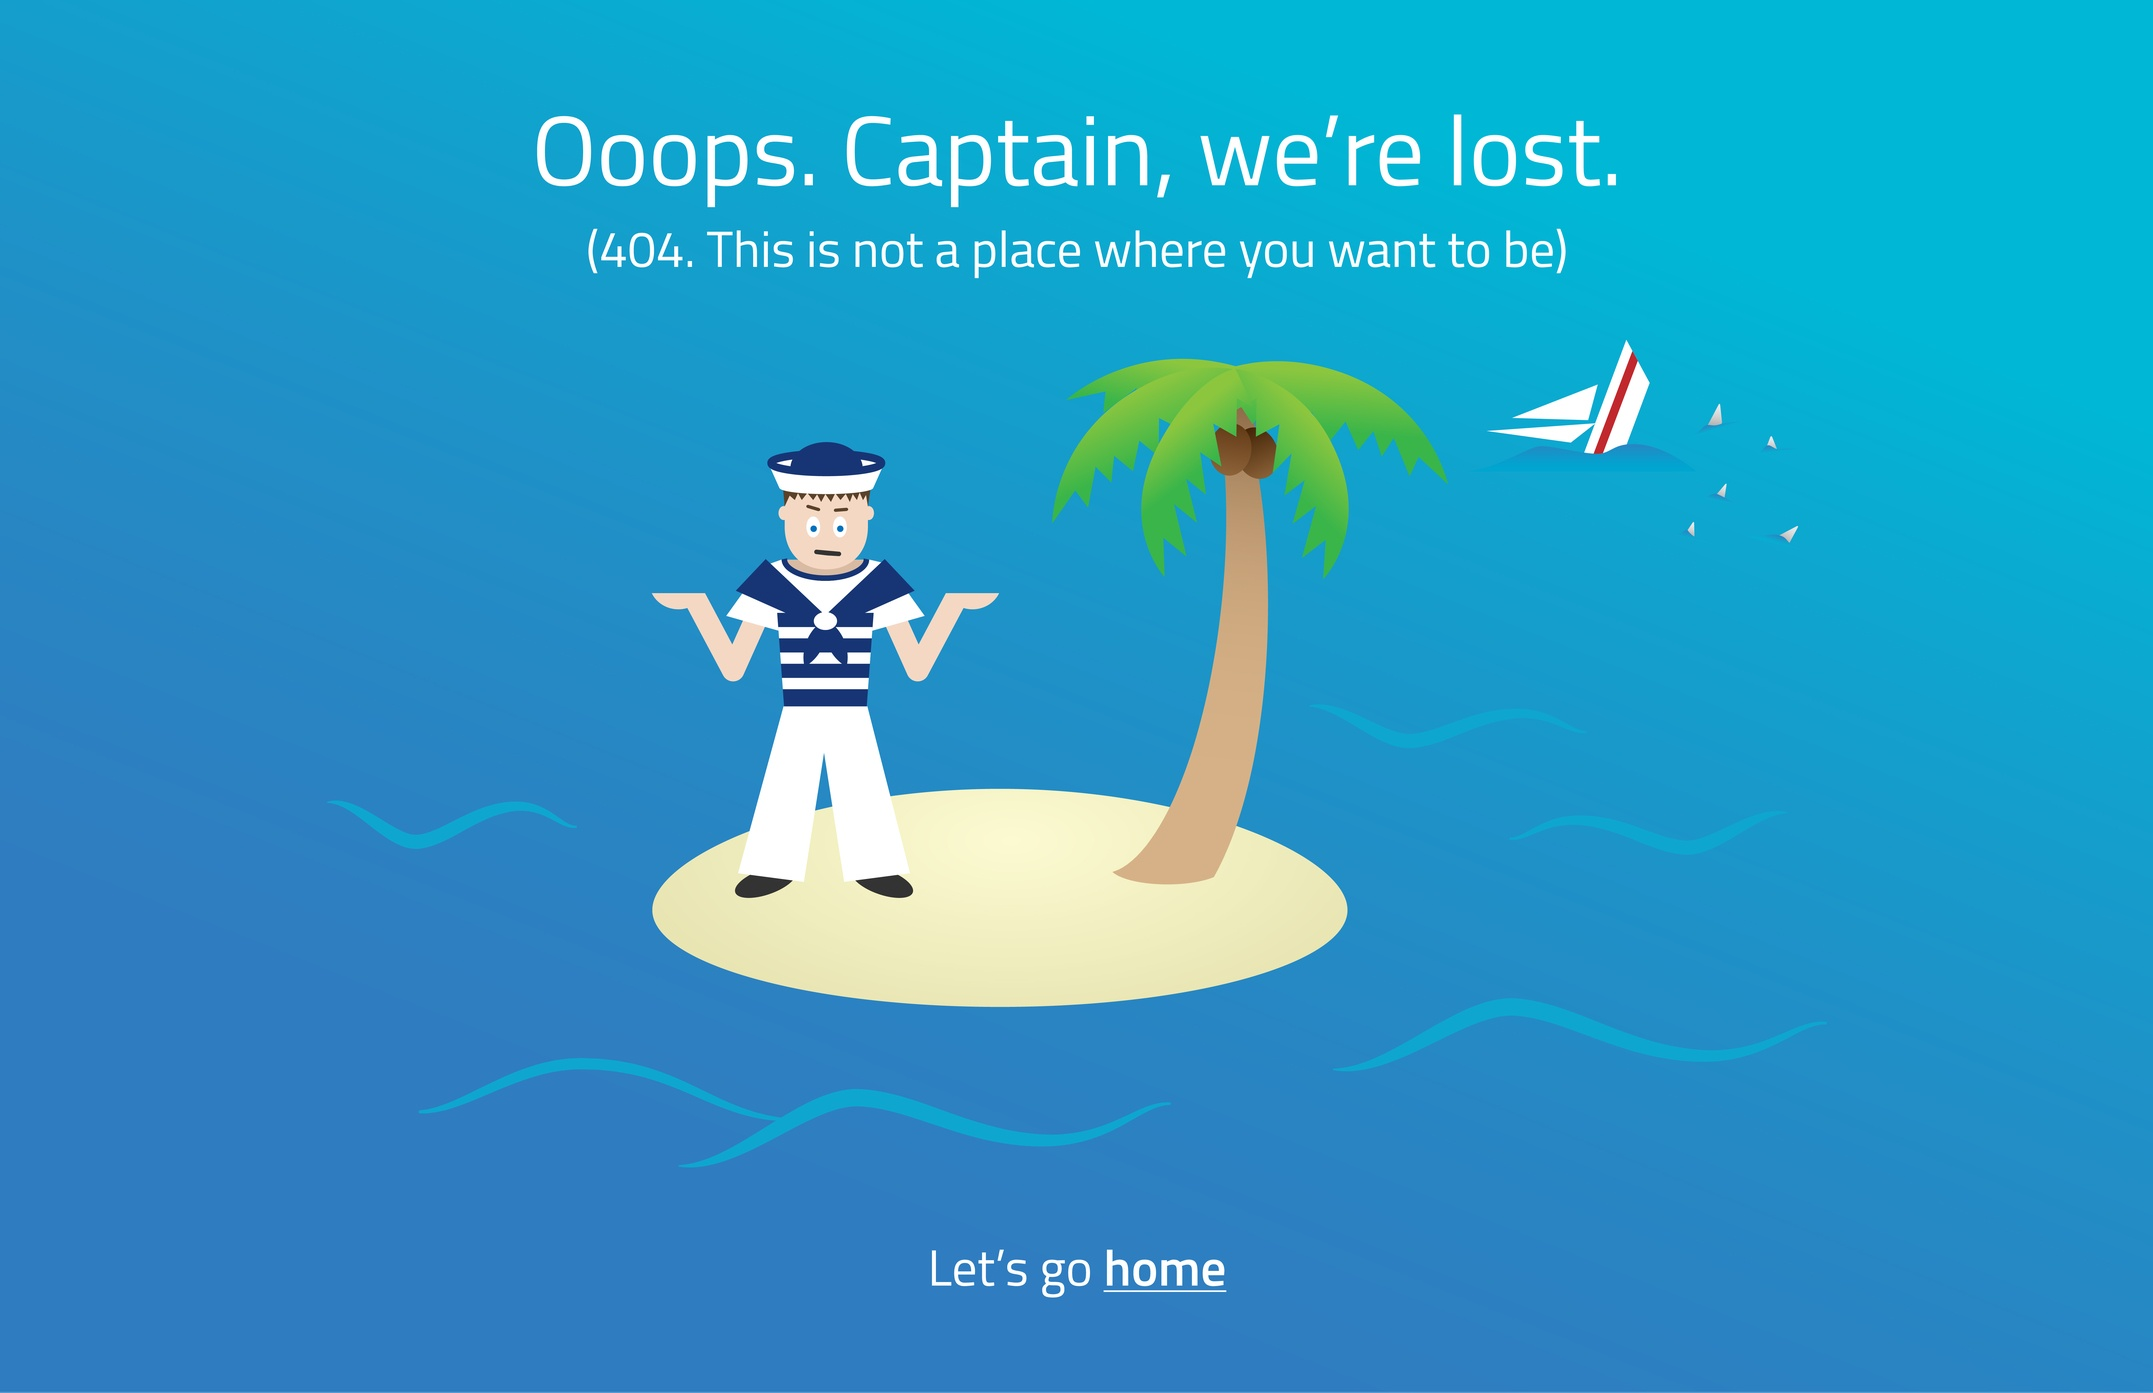 oop-captain-lost